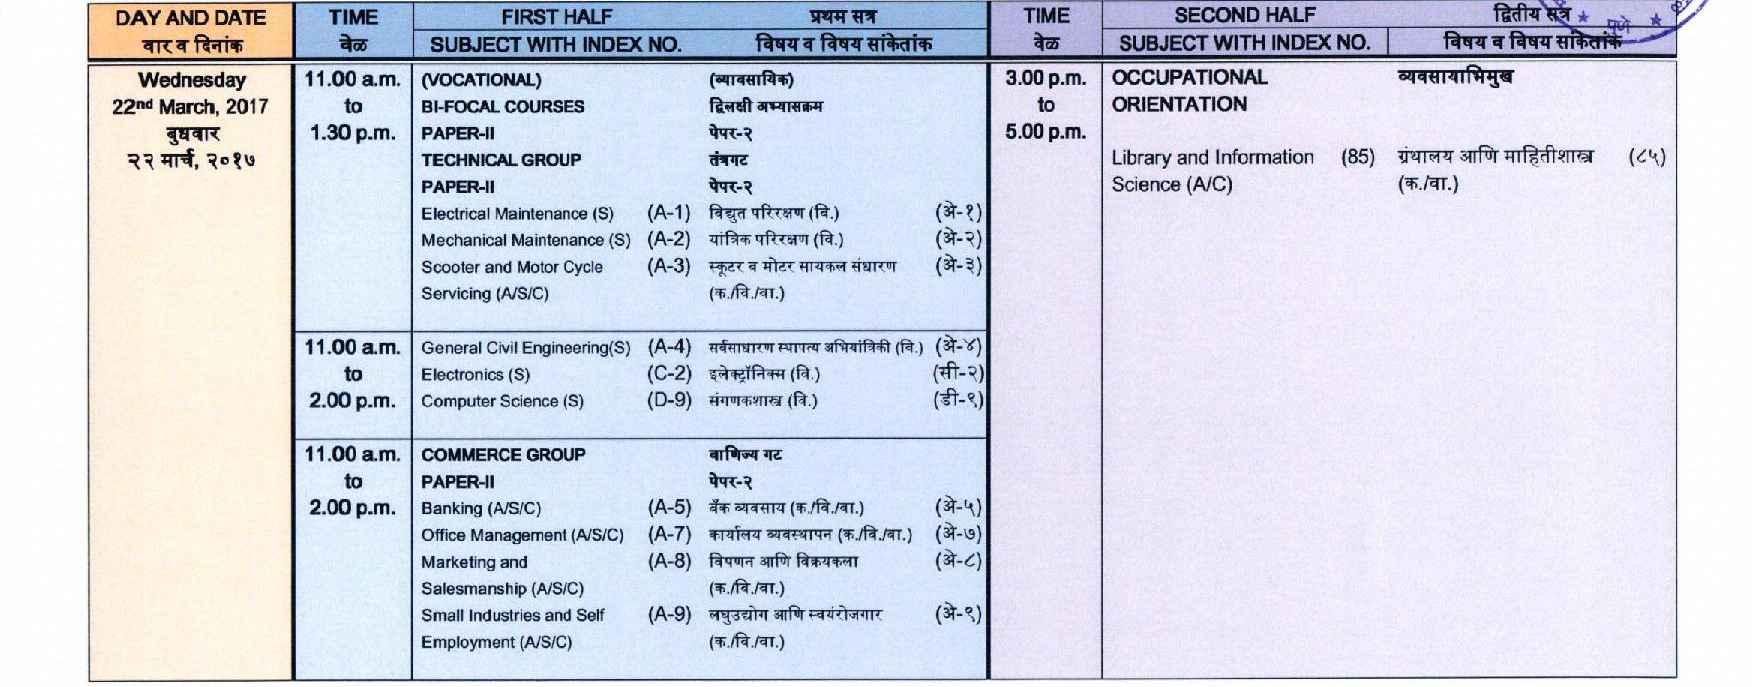 Time table Of 80 hsc 2018 commerce Image